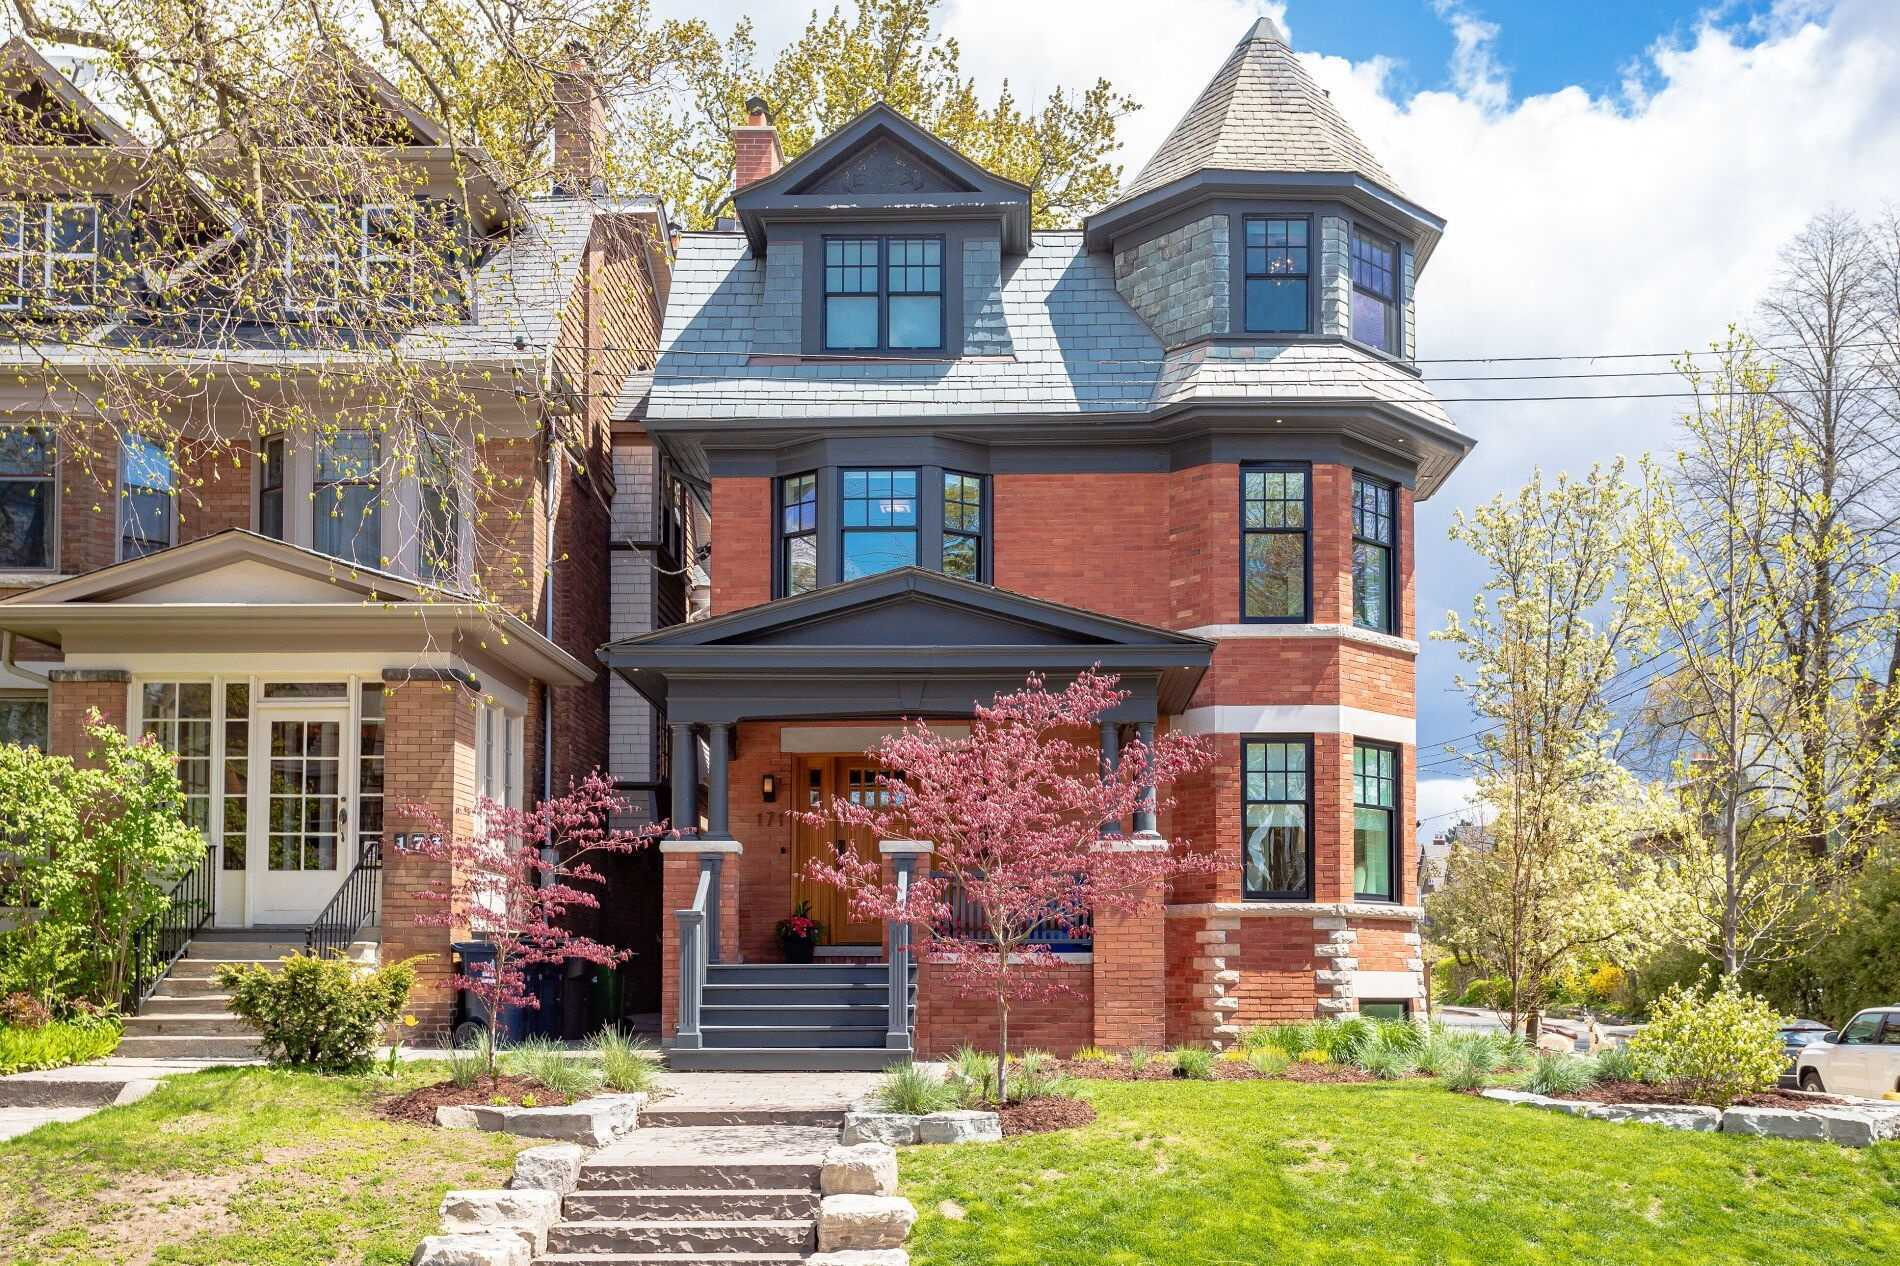 171 Indian Rd, Toronto, Ontario M6R2W2, 5 Bedrooms Bedrooms, 10 Rooms Rooms,5 BathroomsBathrooms,Detached,For Sale,Indian,W5230335